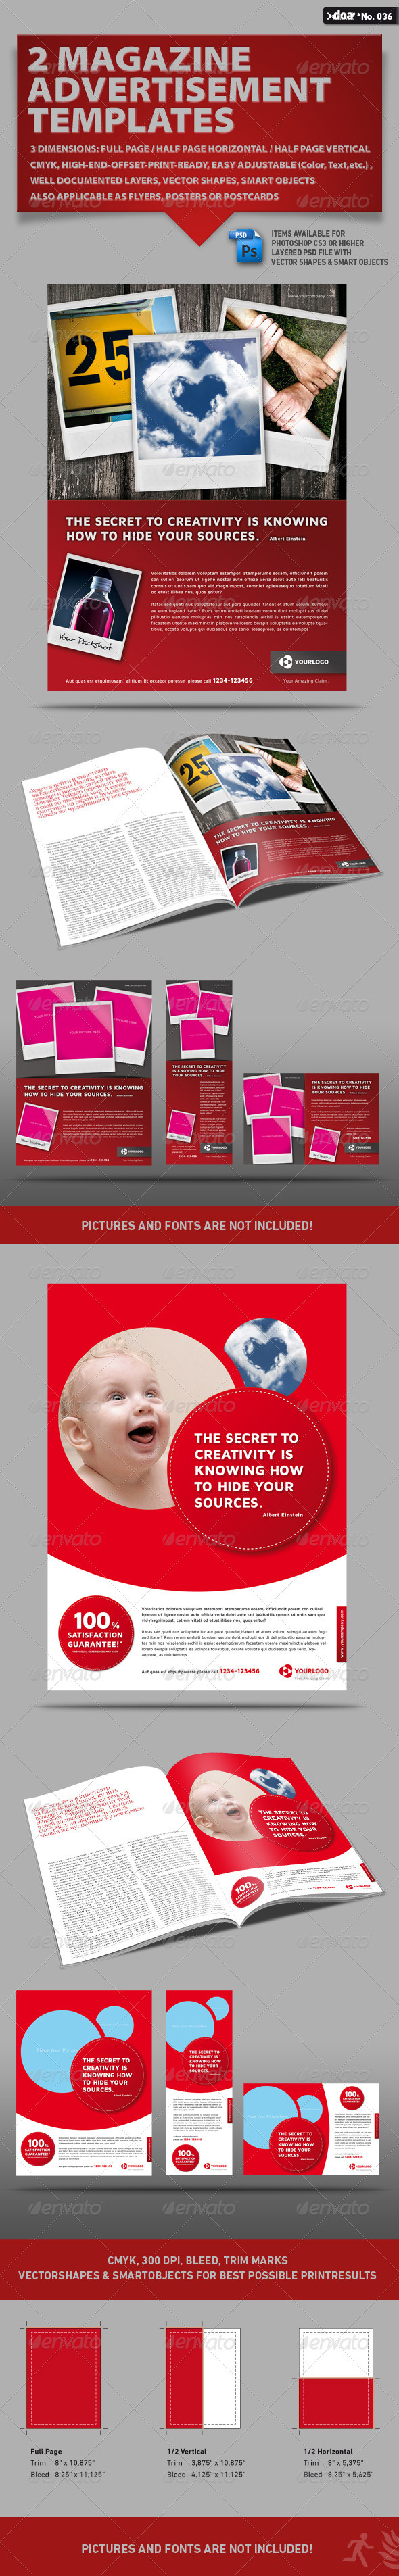 2x3 Magazine AD Templates - Corporate Flyers